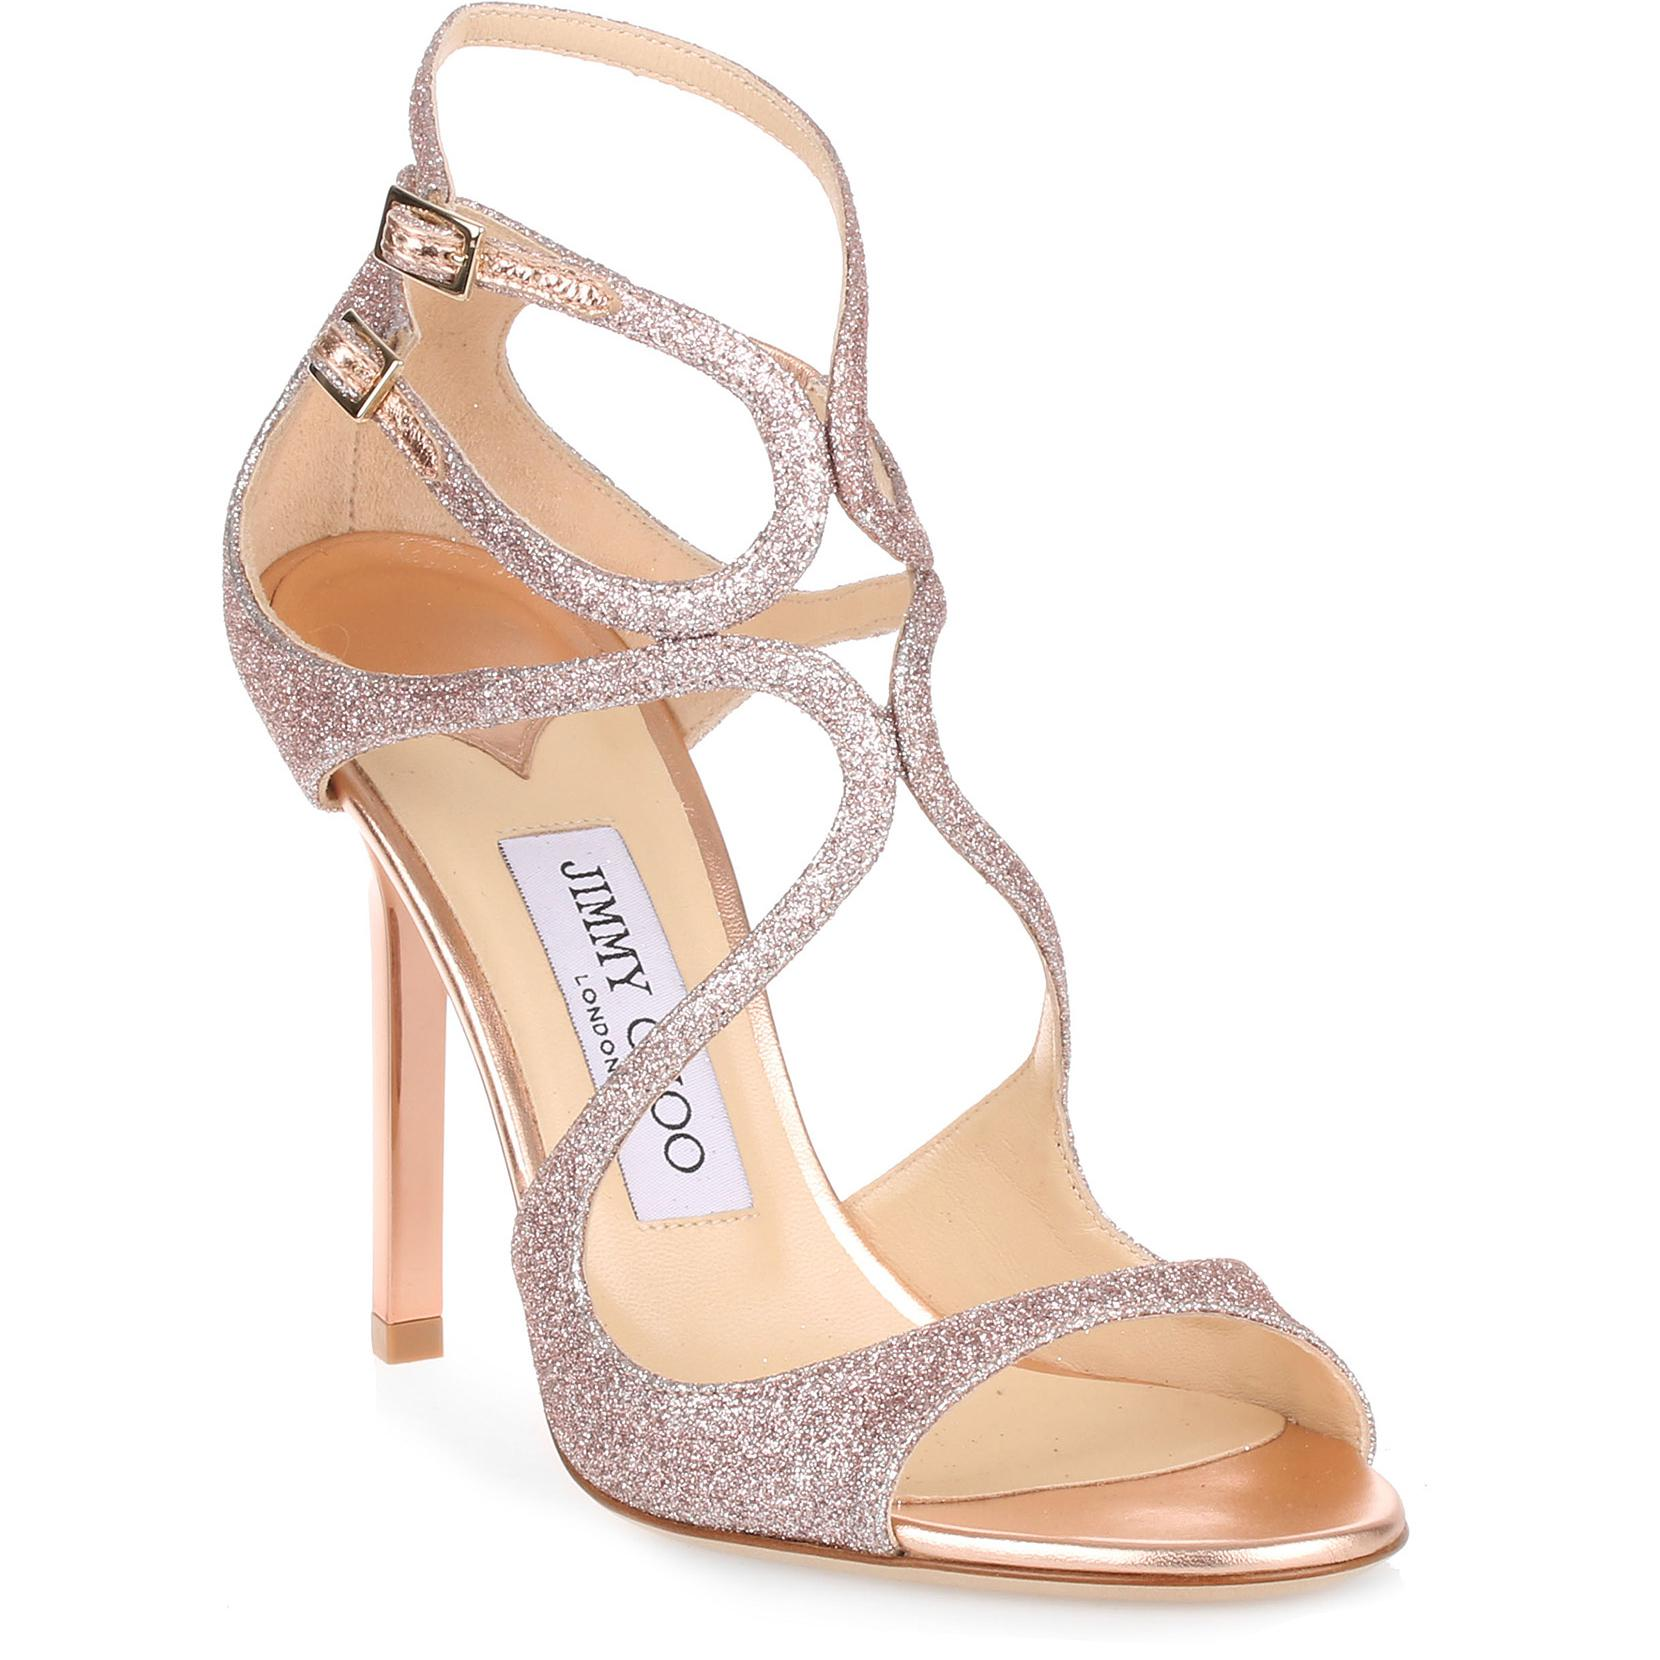 Jimmy choo Lang 100 glitter leather sandals